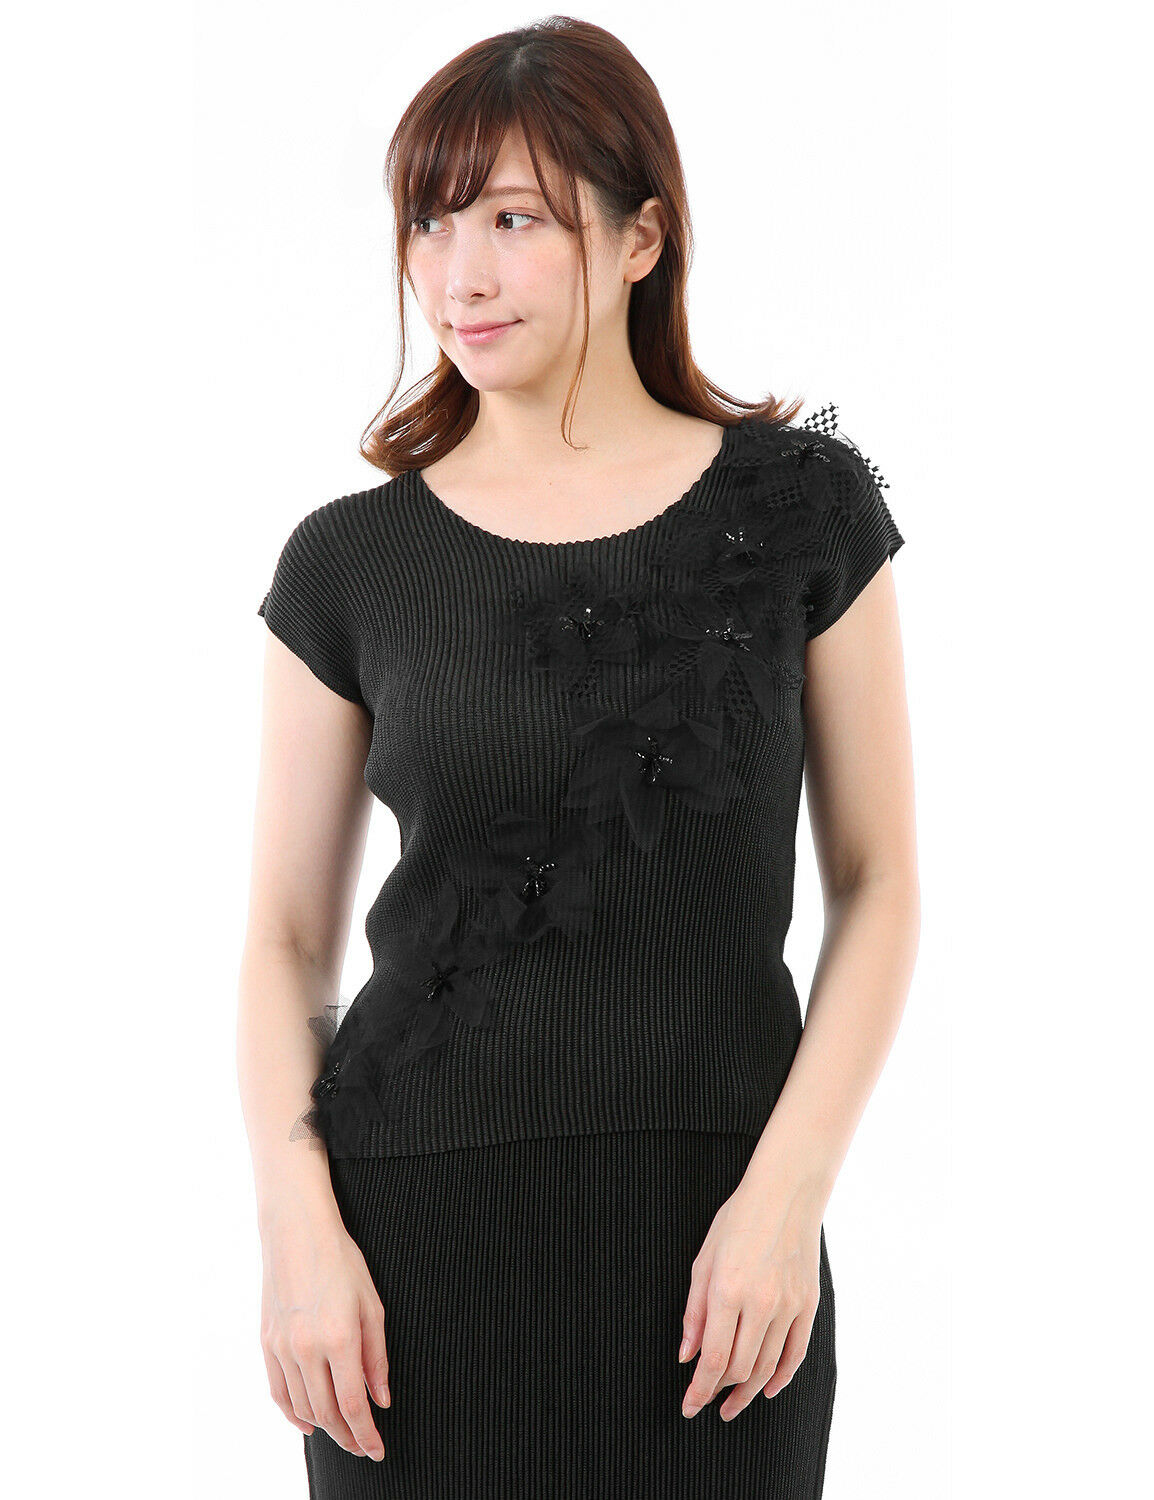 SHUTTLE PLEATS 3DFloral motif Embroiderot lace French sleeve Blouse Tops 2-20.